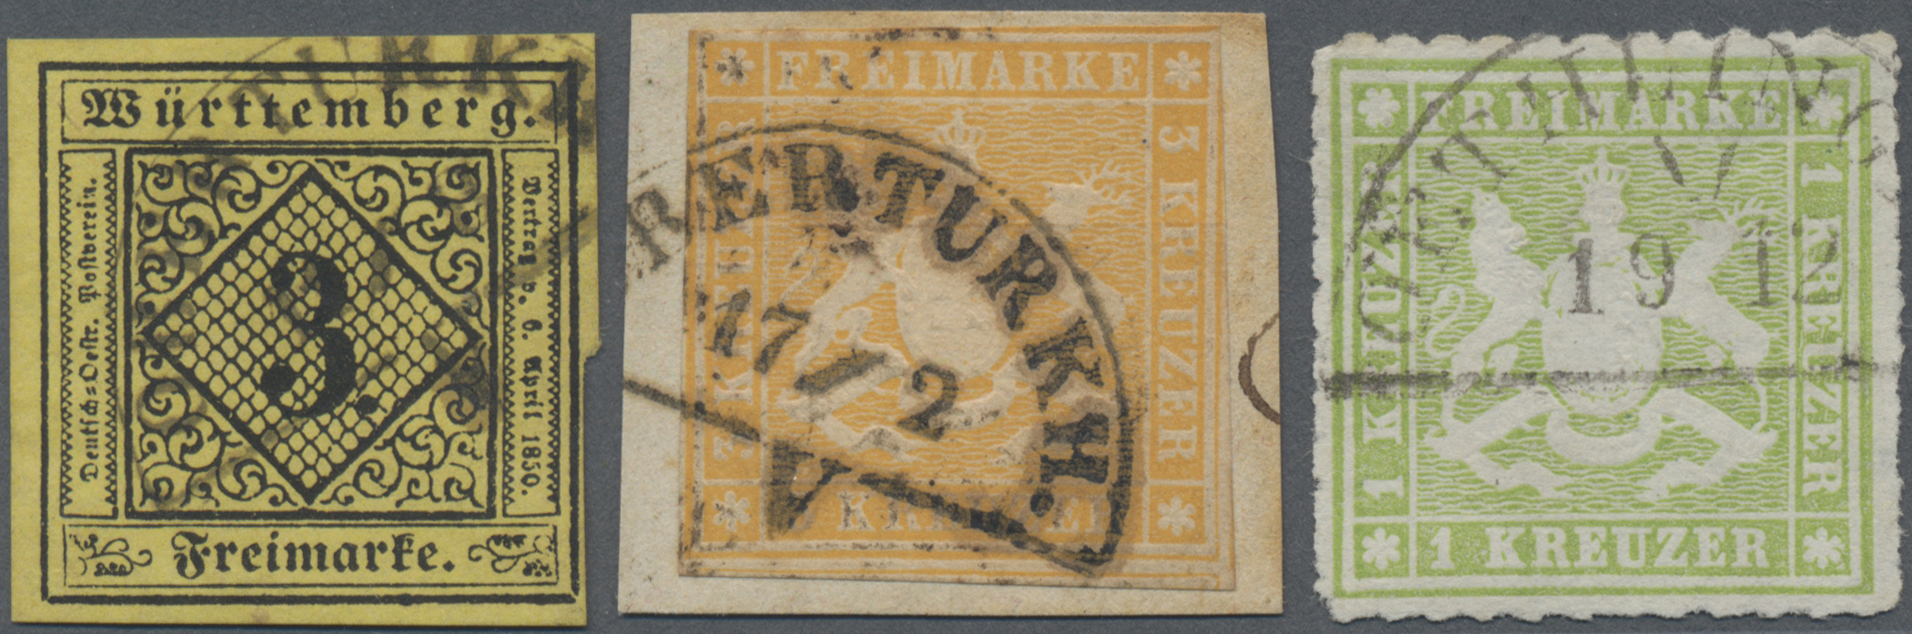 Lot 11124 - Württemberg - Bahnpost  -  Auktionshaus Christoph Gärtner GmbH & Co. KG 50th Auction Anniversary Auction - Day 4